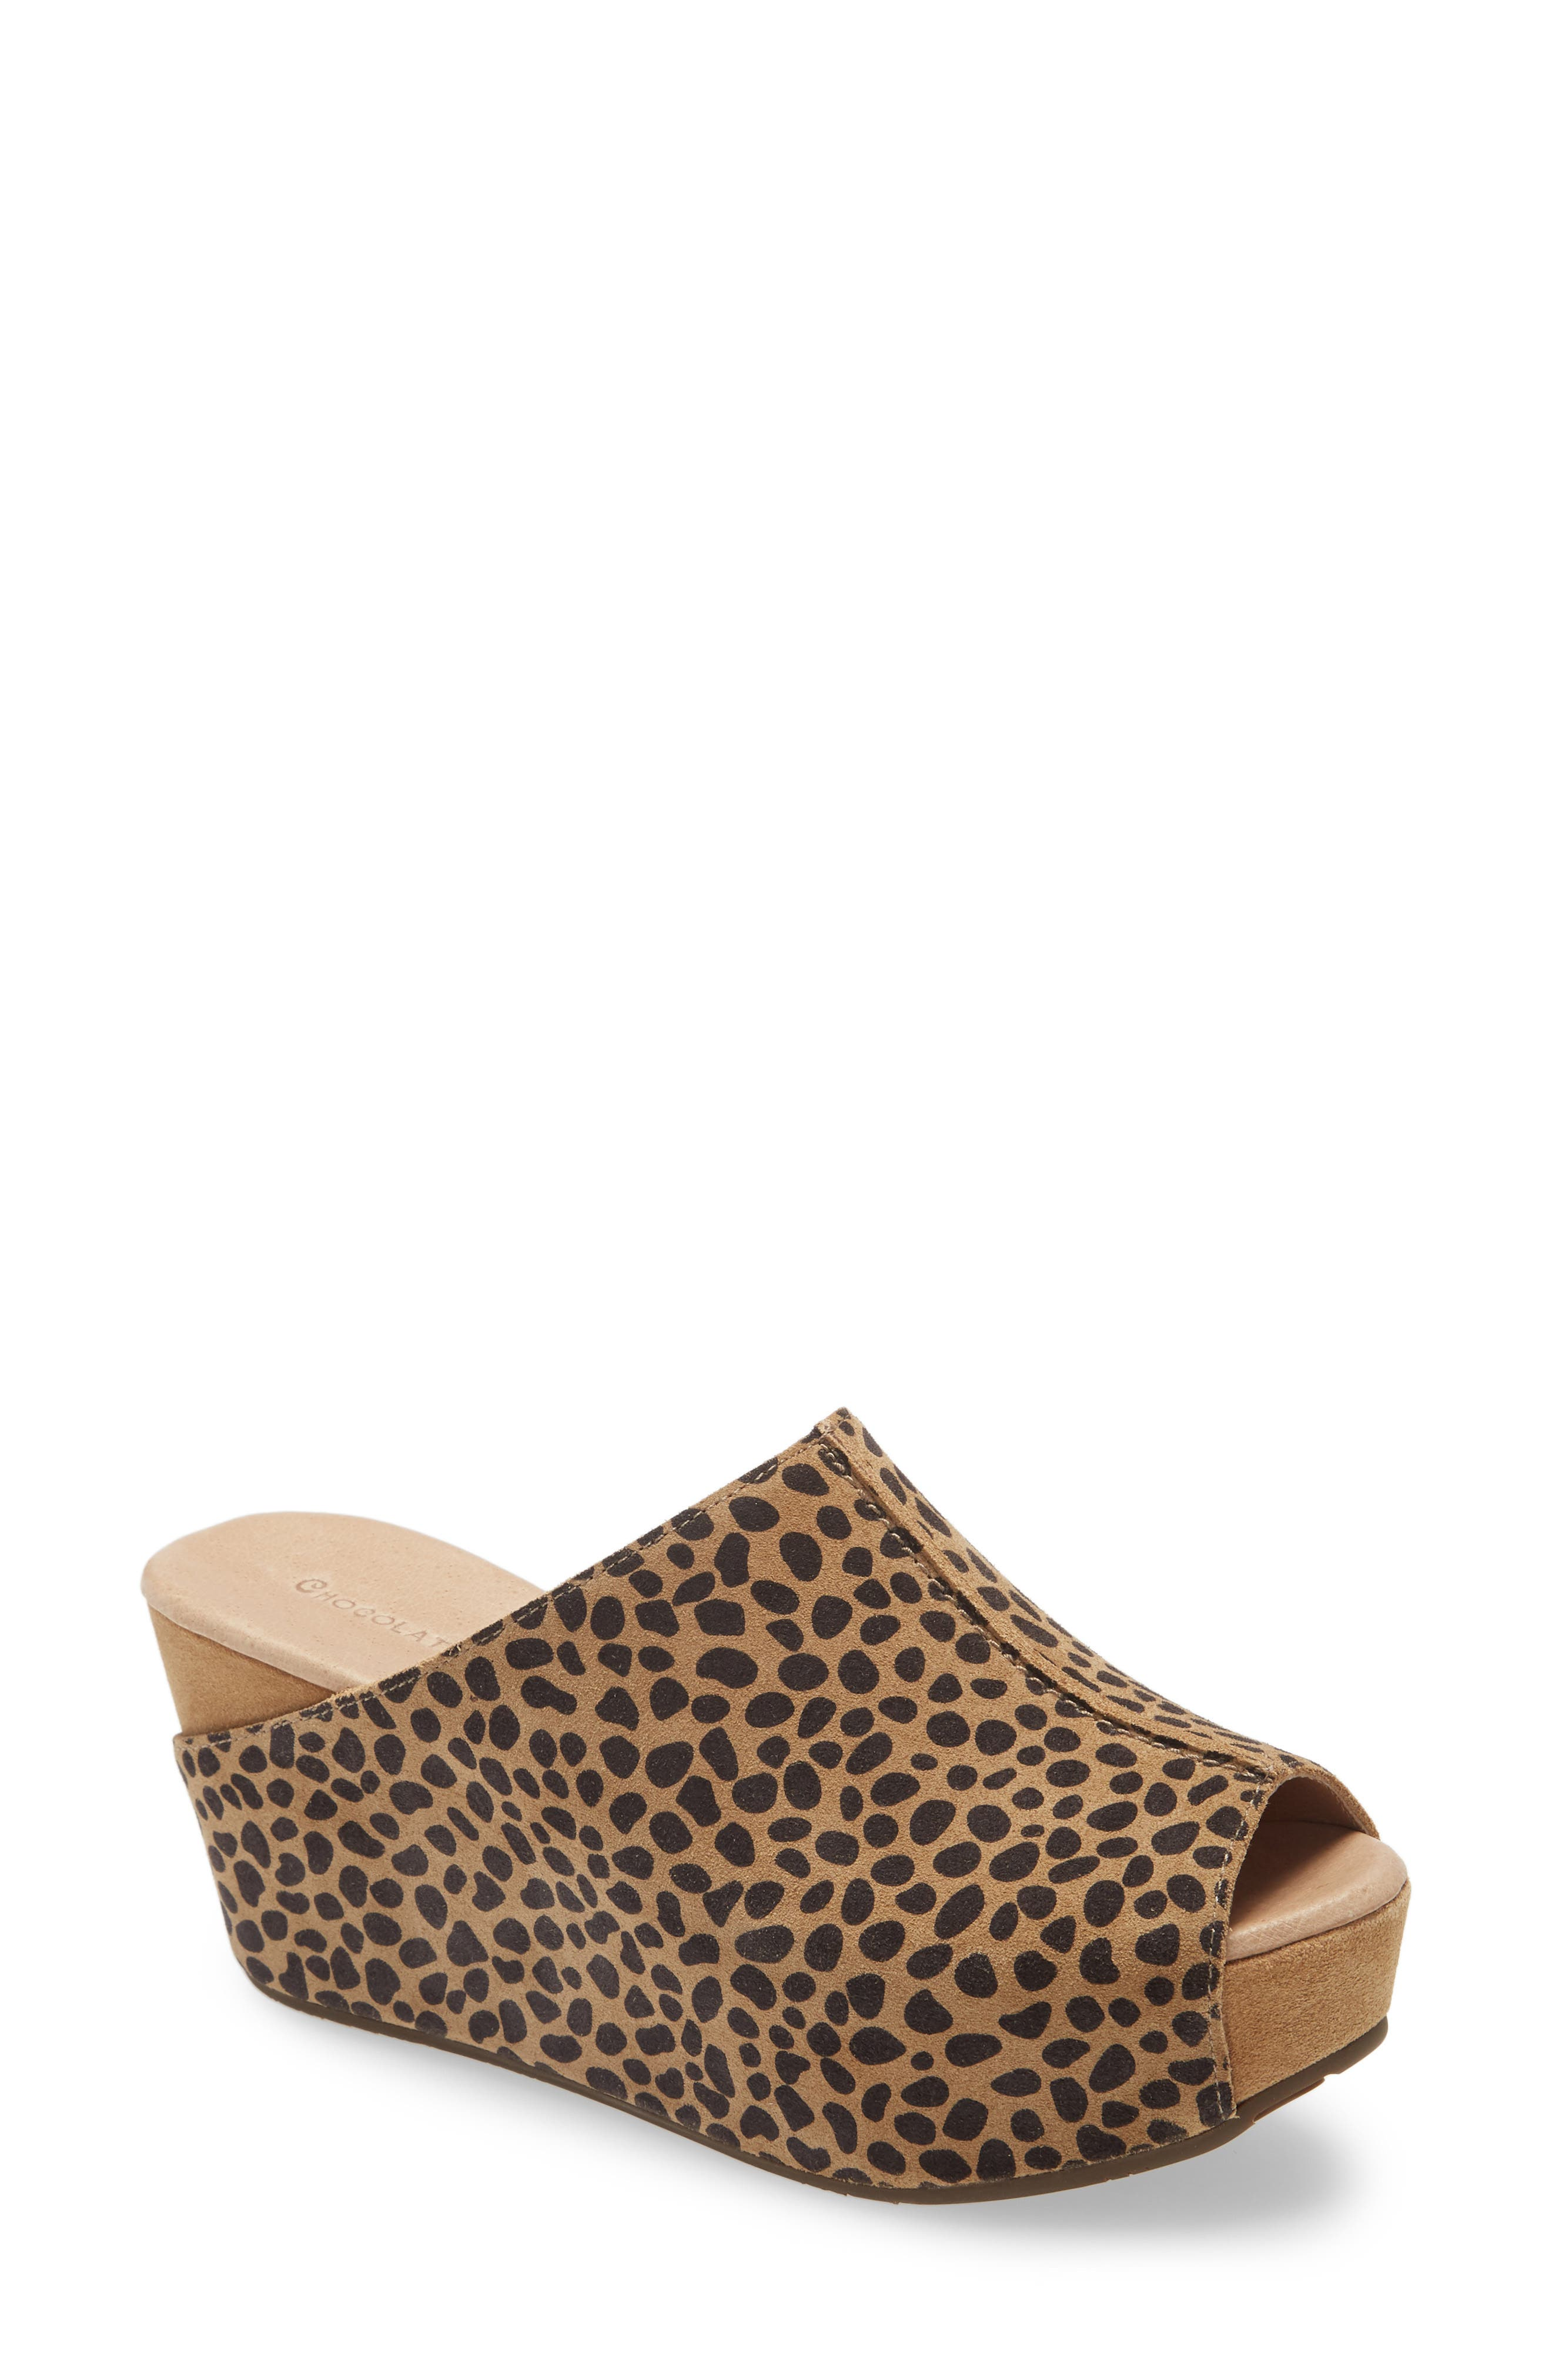 A wrapped wedge, chunky platform and reversed center seam pay homage to the \\\'70s-inspired influences of a decidedly modern mule. Style Name: Chocolat Blu Wynn Peep Toe Mule (Women). Style Number: 5356306. Available in stores.